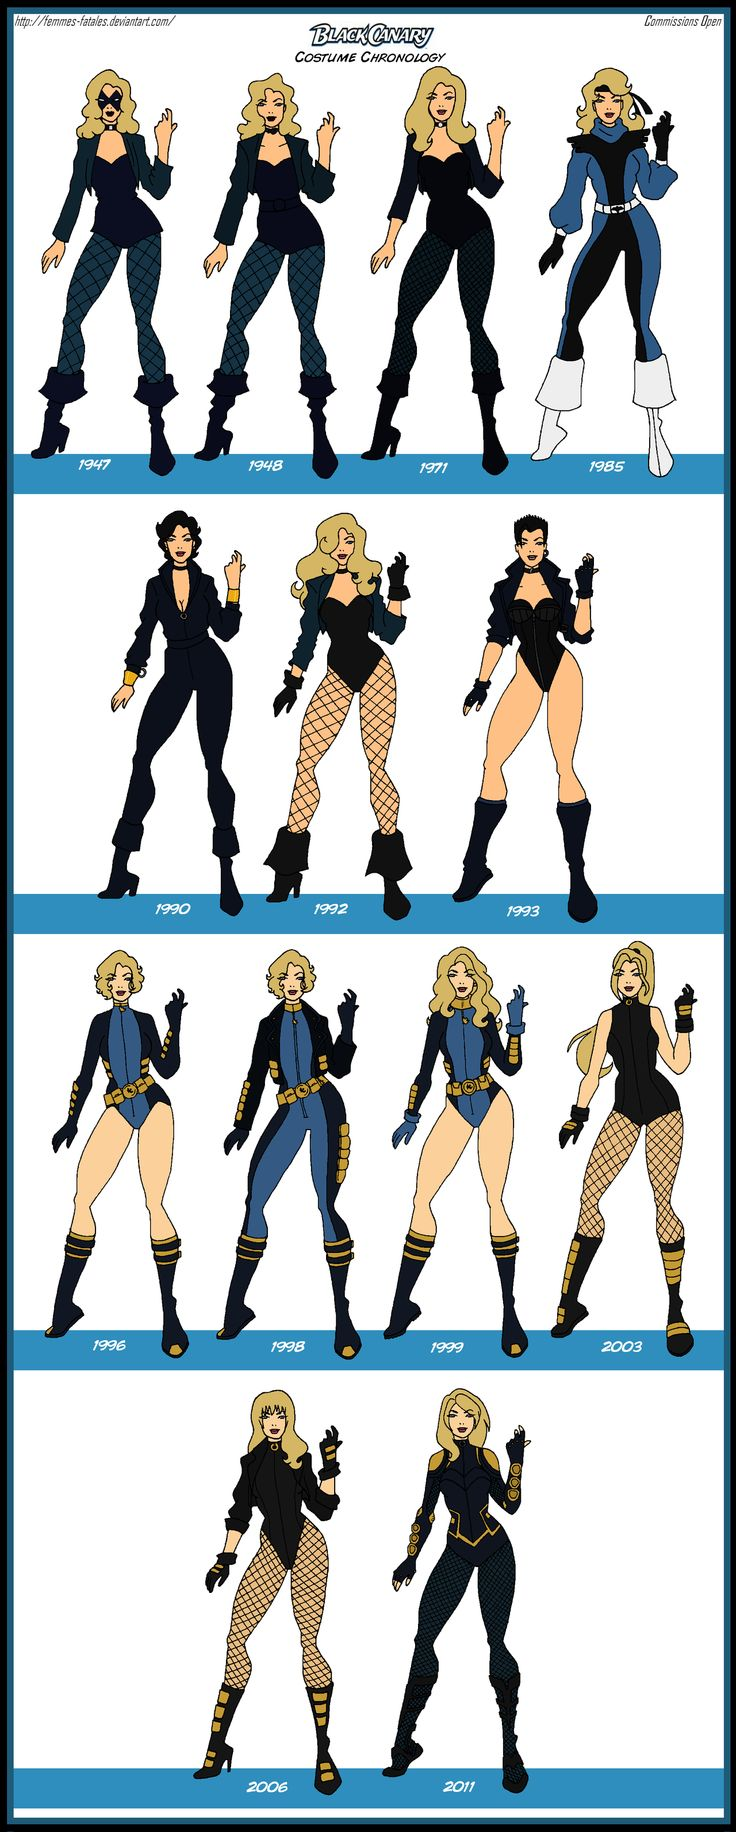 Black Canary Costume Chronology by Femmes-Fatales.deviantart.com on @DeviantArt